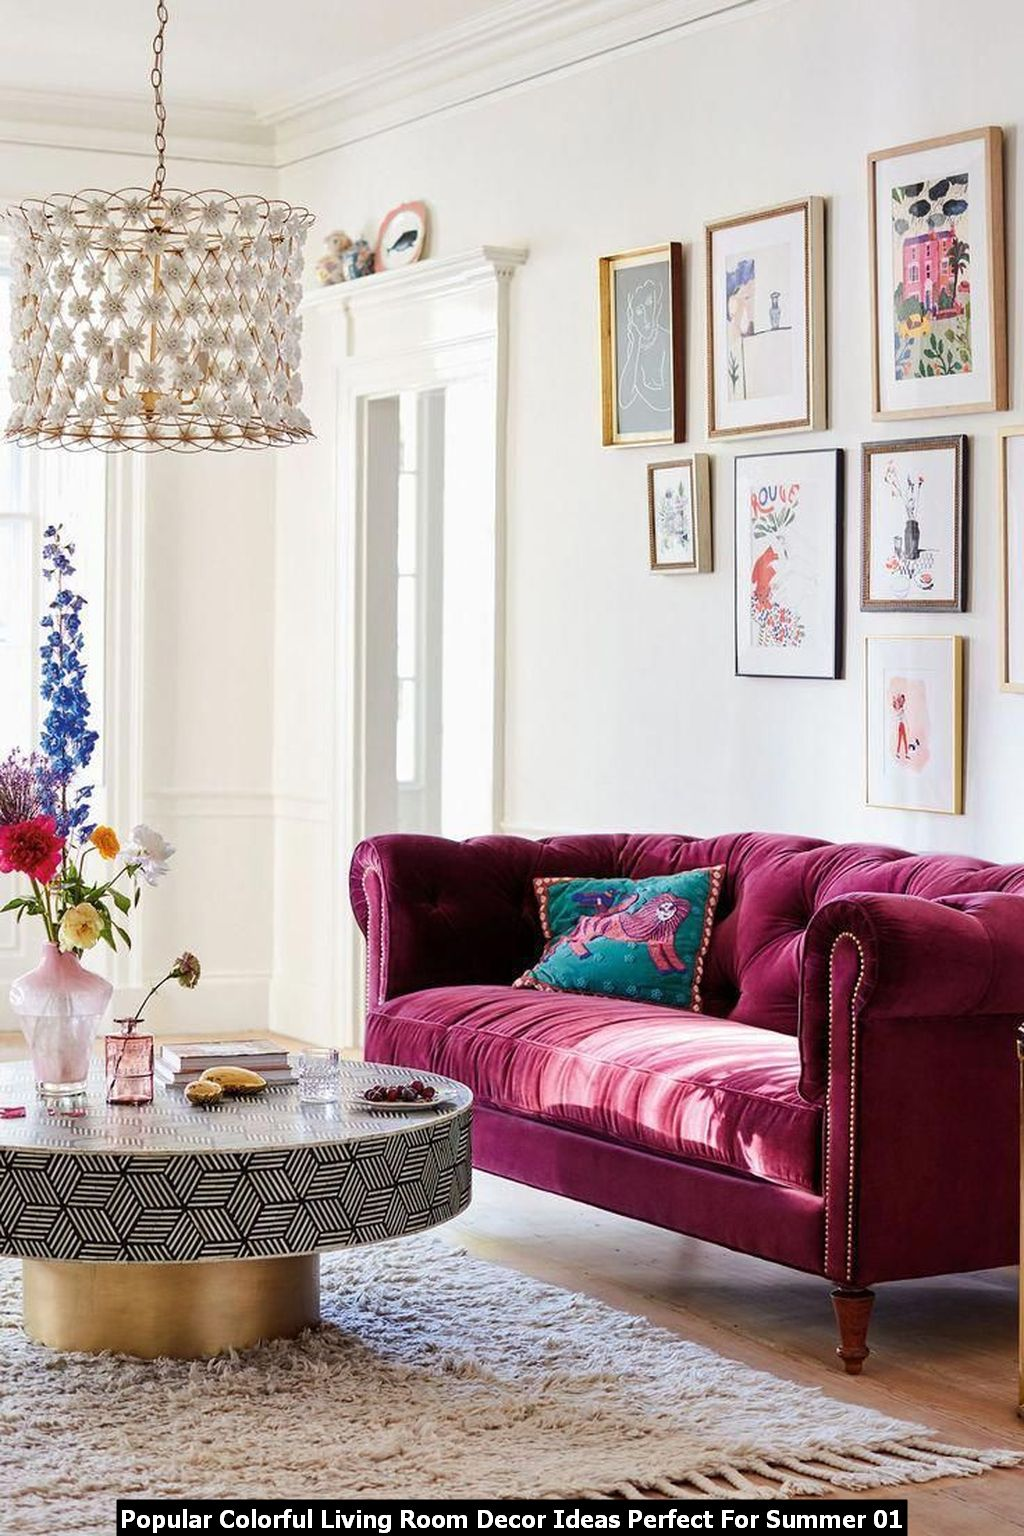 Popular Colorful Living Room Decor Ideas Perfect For Summer 01